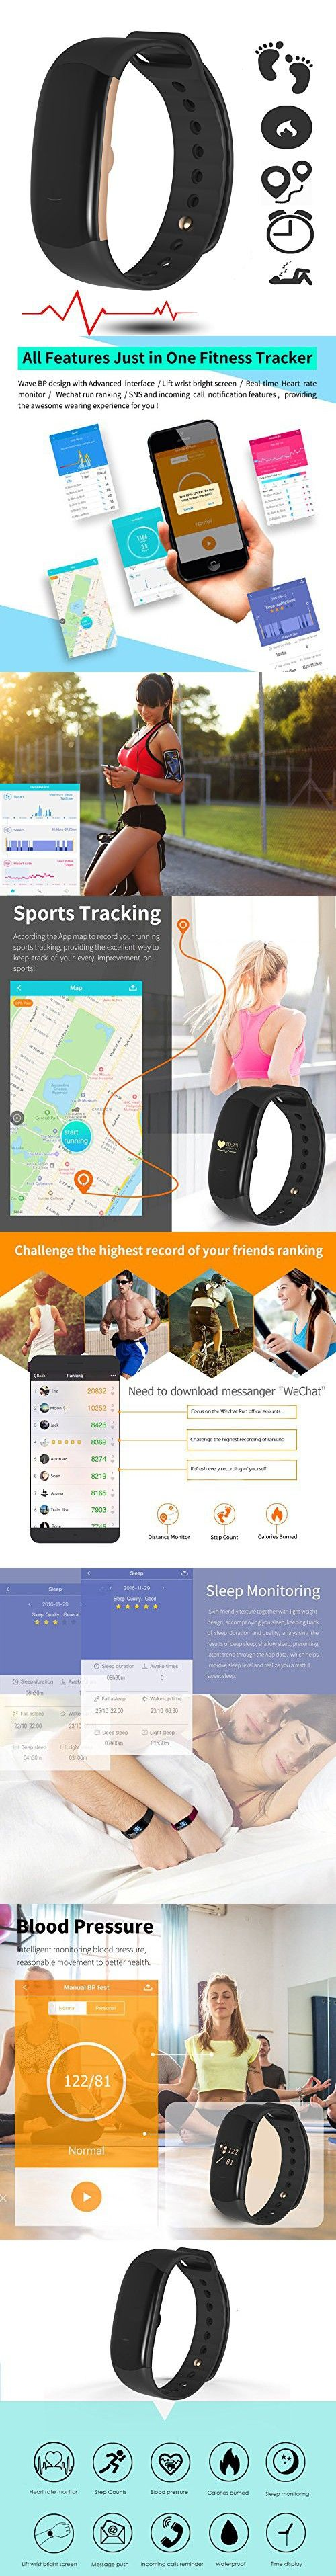 Fitness Activity Tracker 24/7 Heart Rate Monitor with Blood Pressure, Armband Waterproof Pulse Meter, Sport Smart Watch and AutoSleep Recognition Step/Calorie Counter SMS Call Notification n more